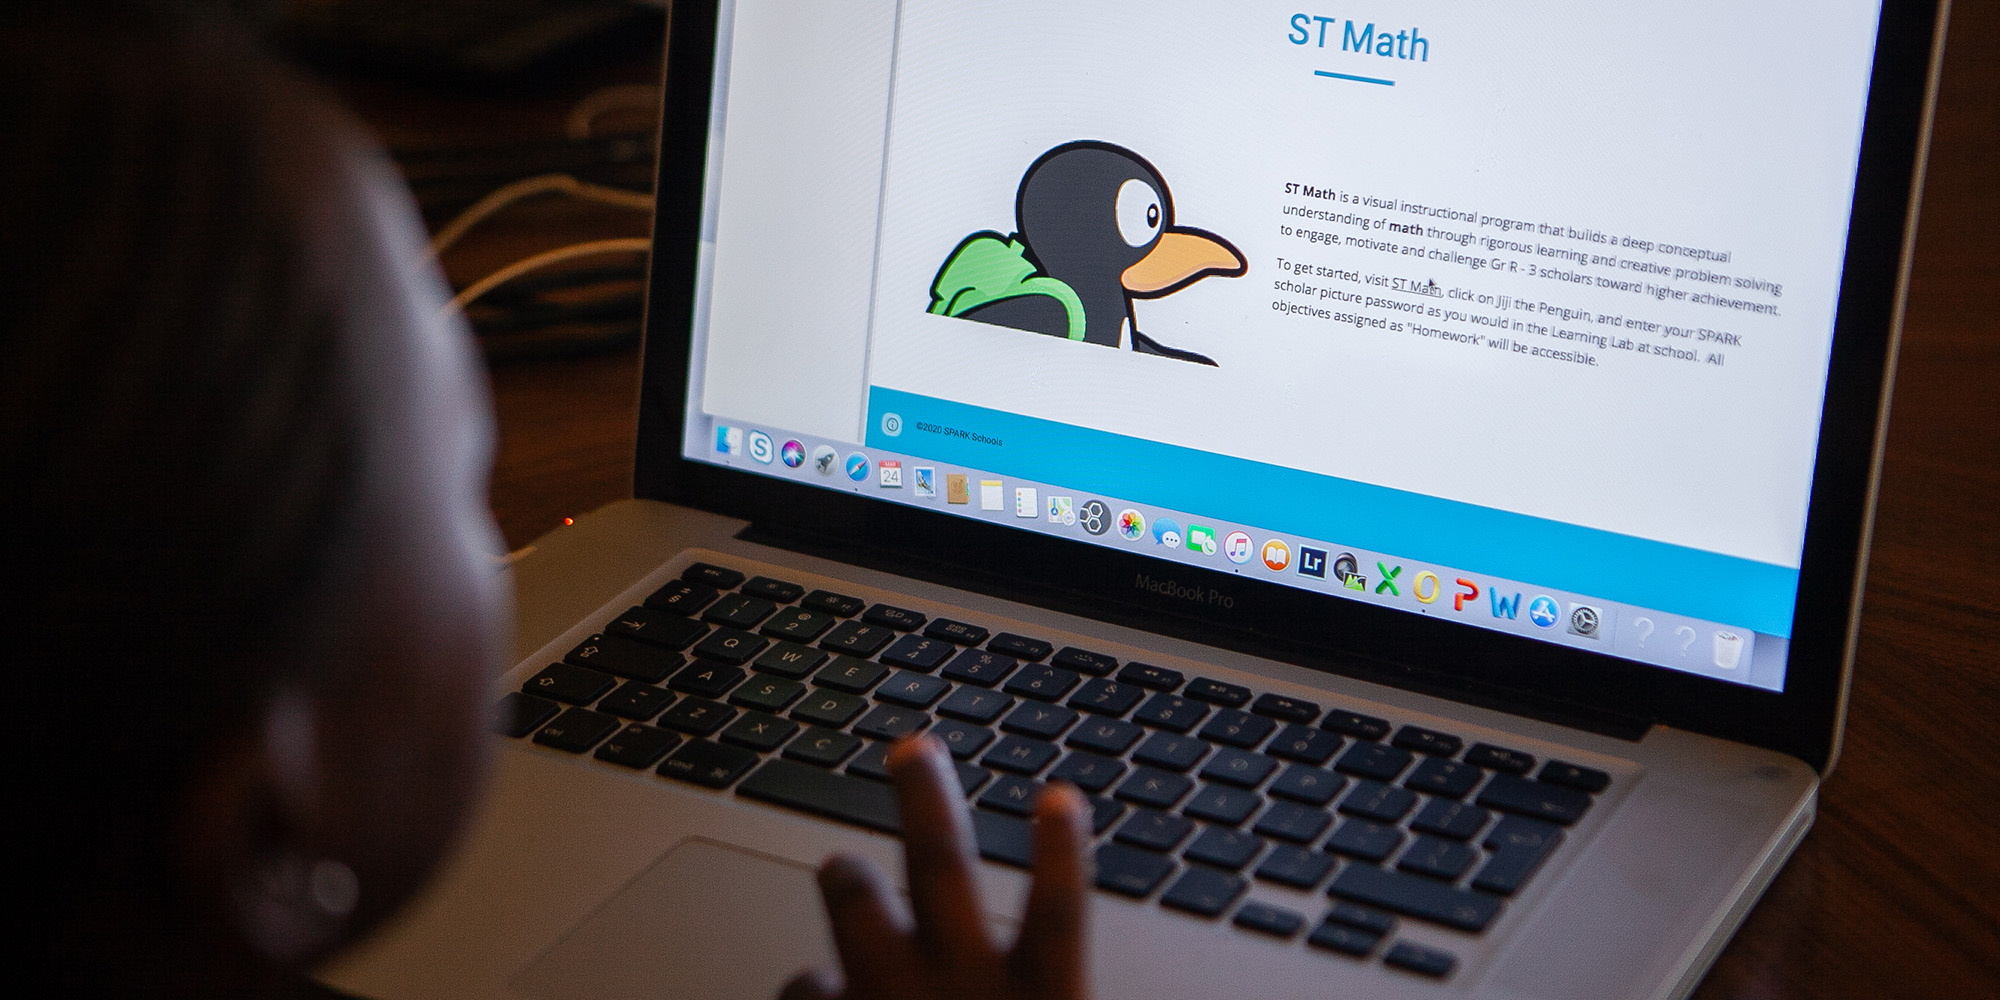 Op-Ed: Online education during the pandemic: The challenges and opportunities